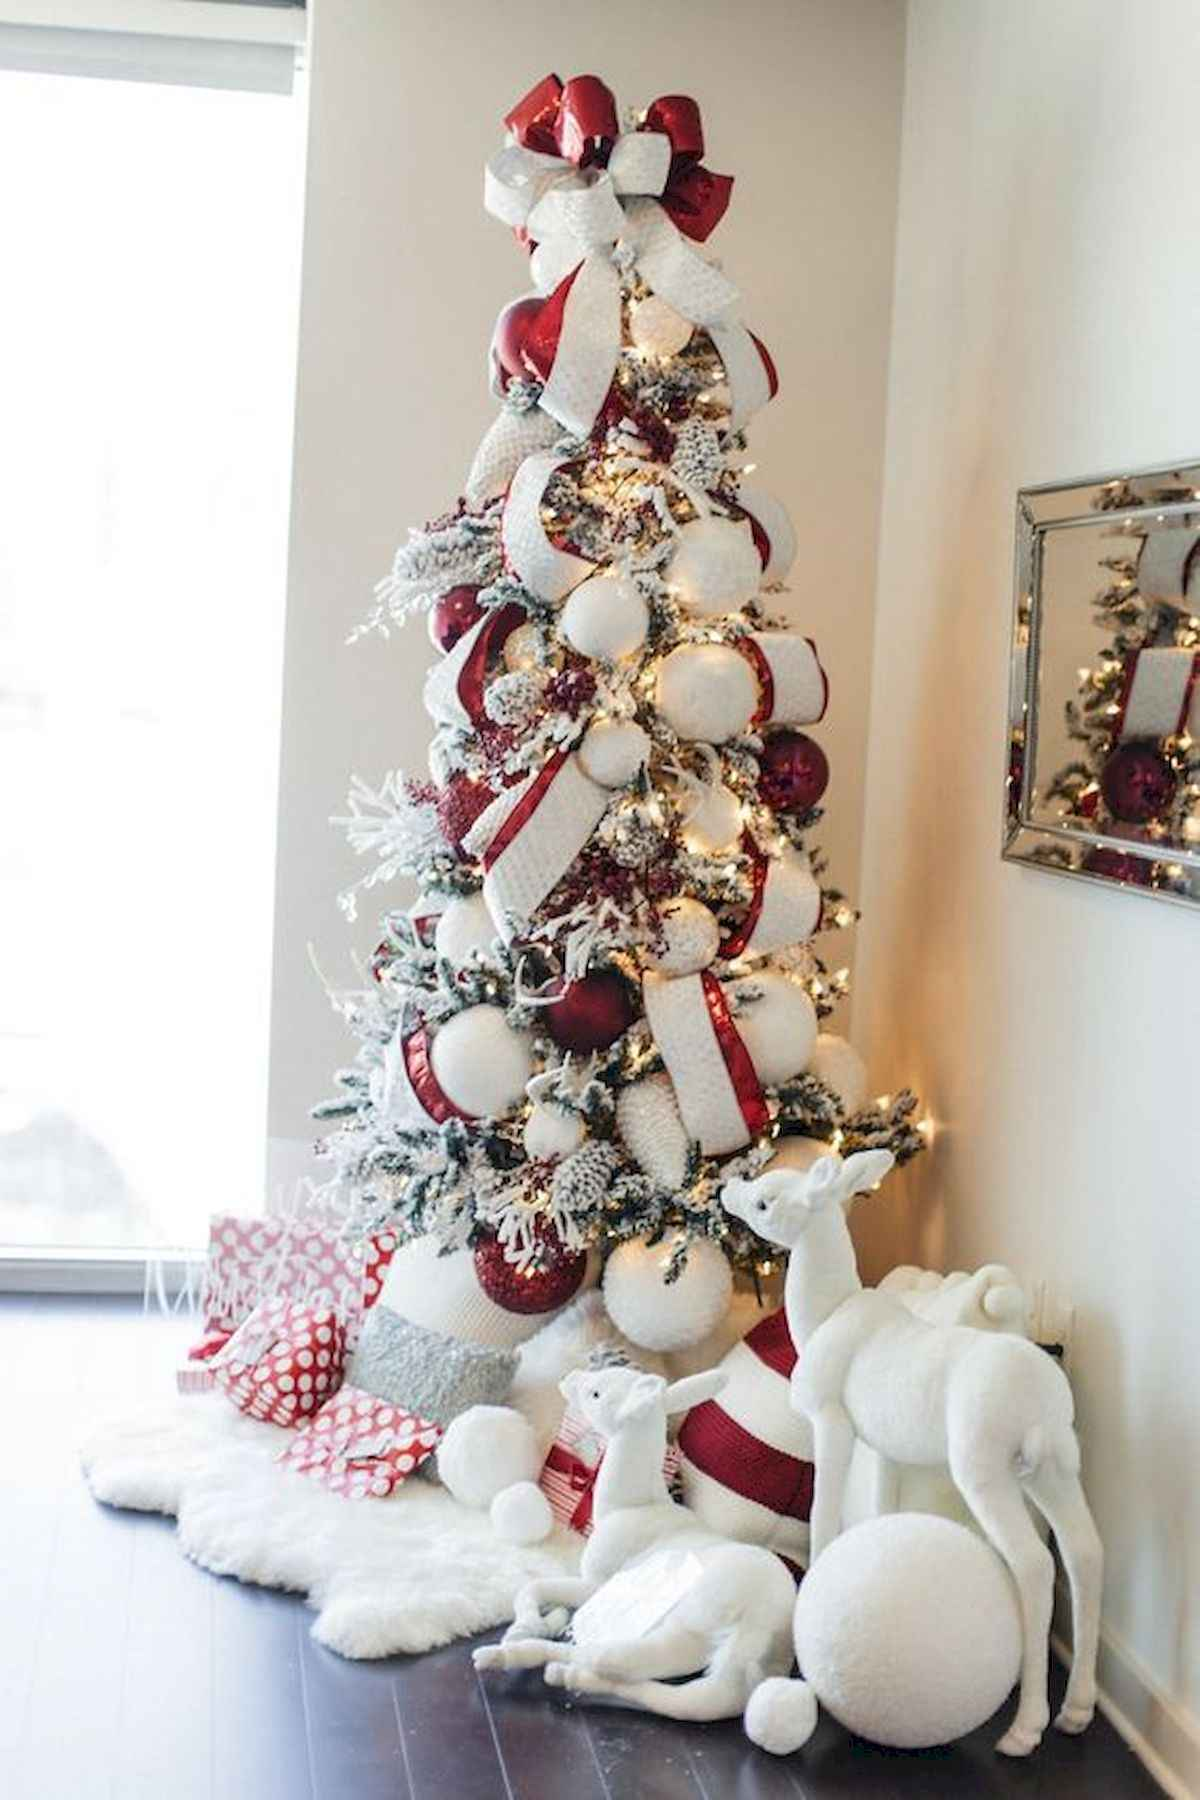 60 awesome christmas tree decorations ideas (9)